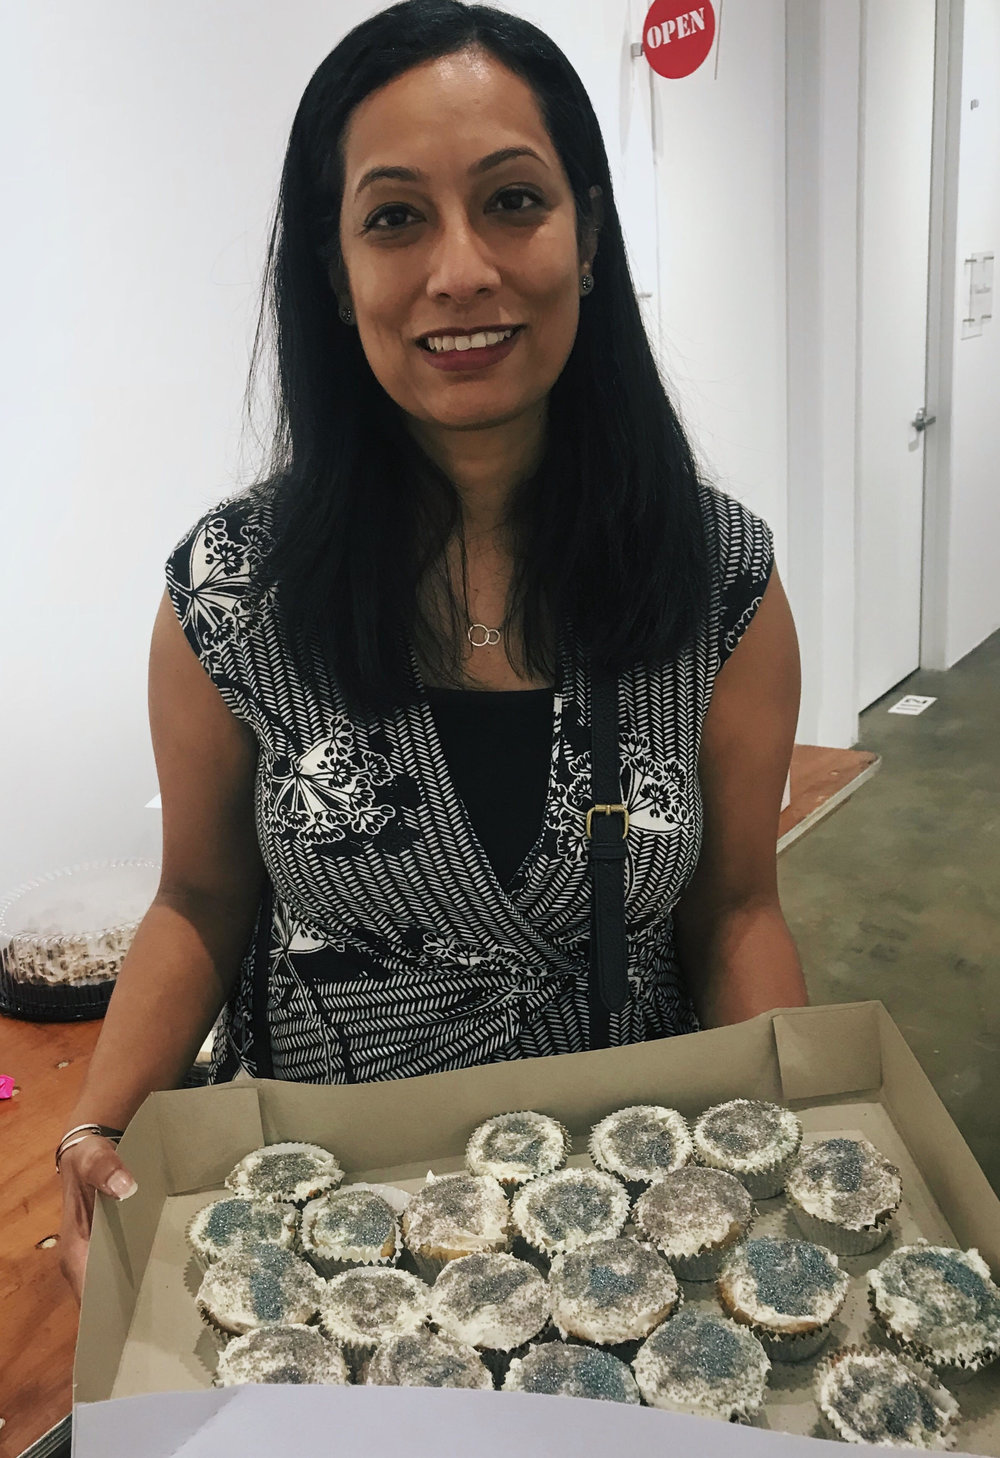 Shubhra supported the NAMI Depressed Cake Shop 2018 Event by baking gray cupcakes for the fundraiser.